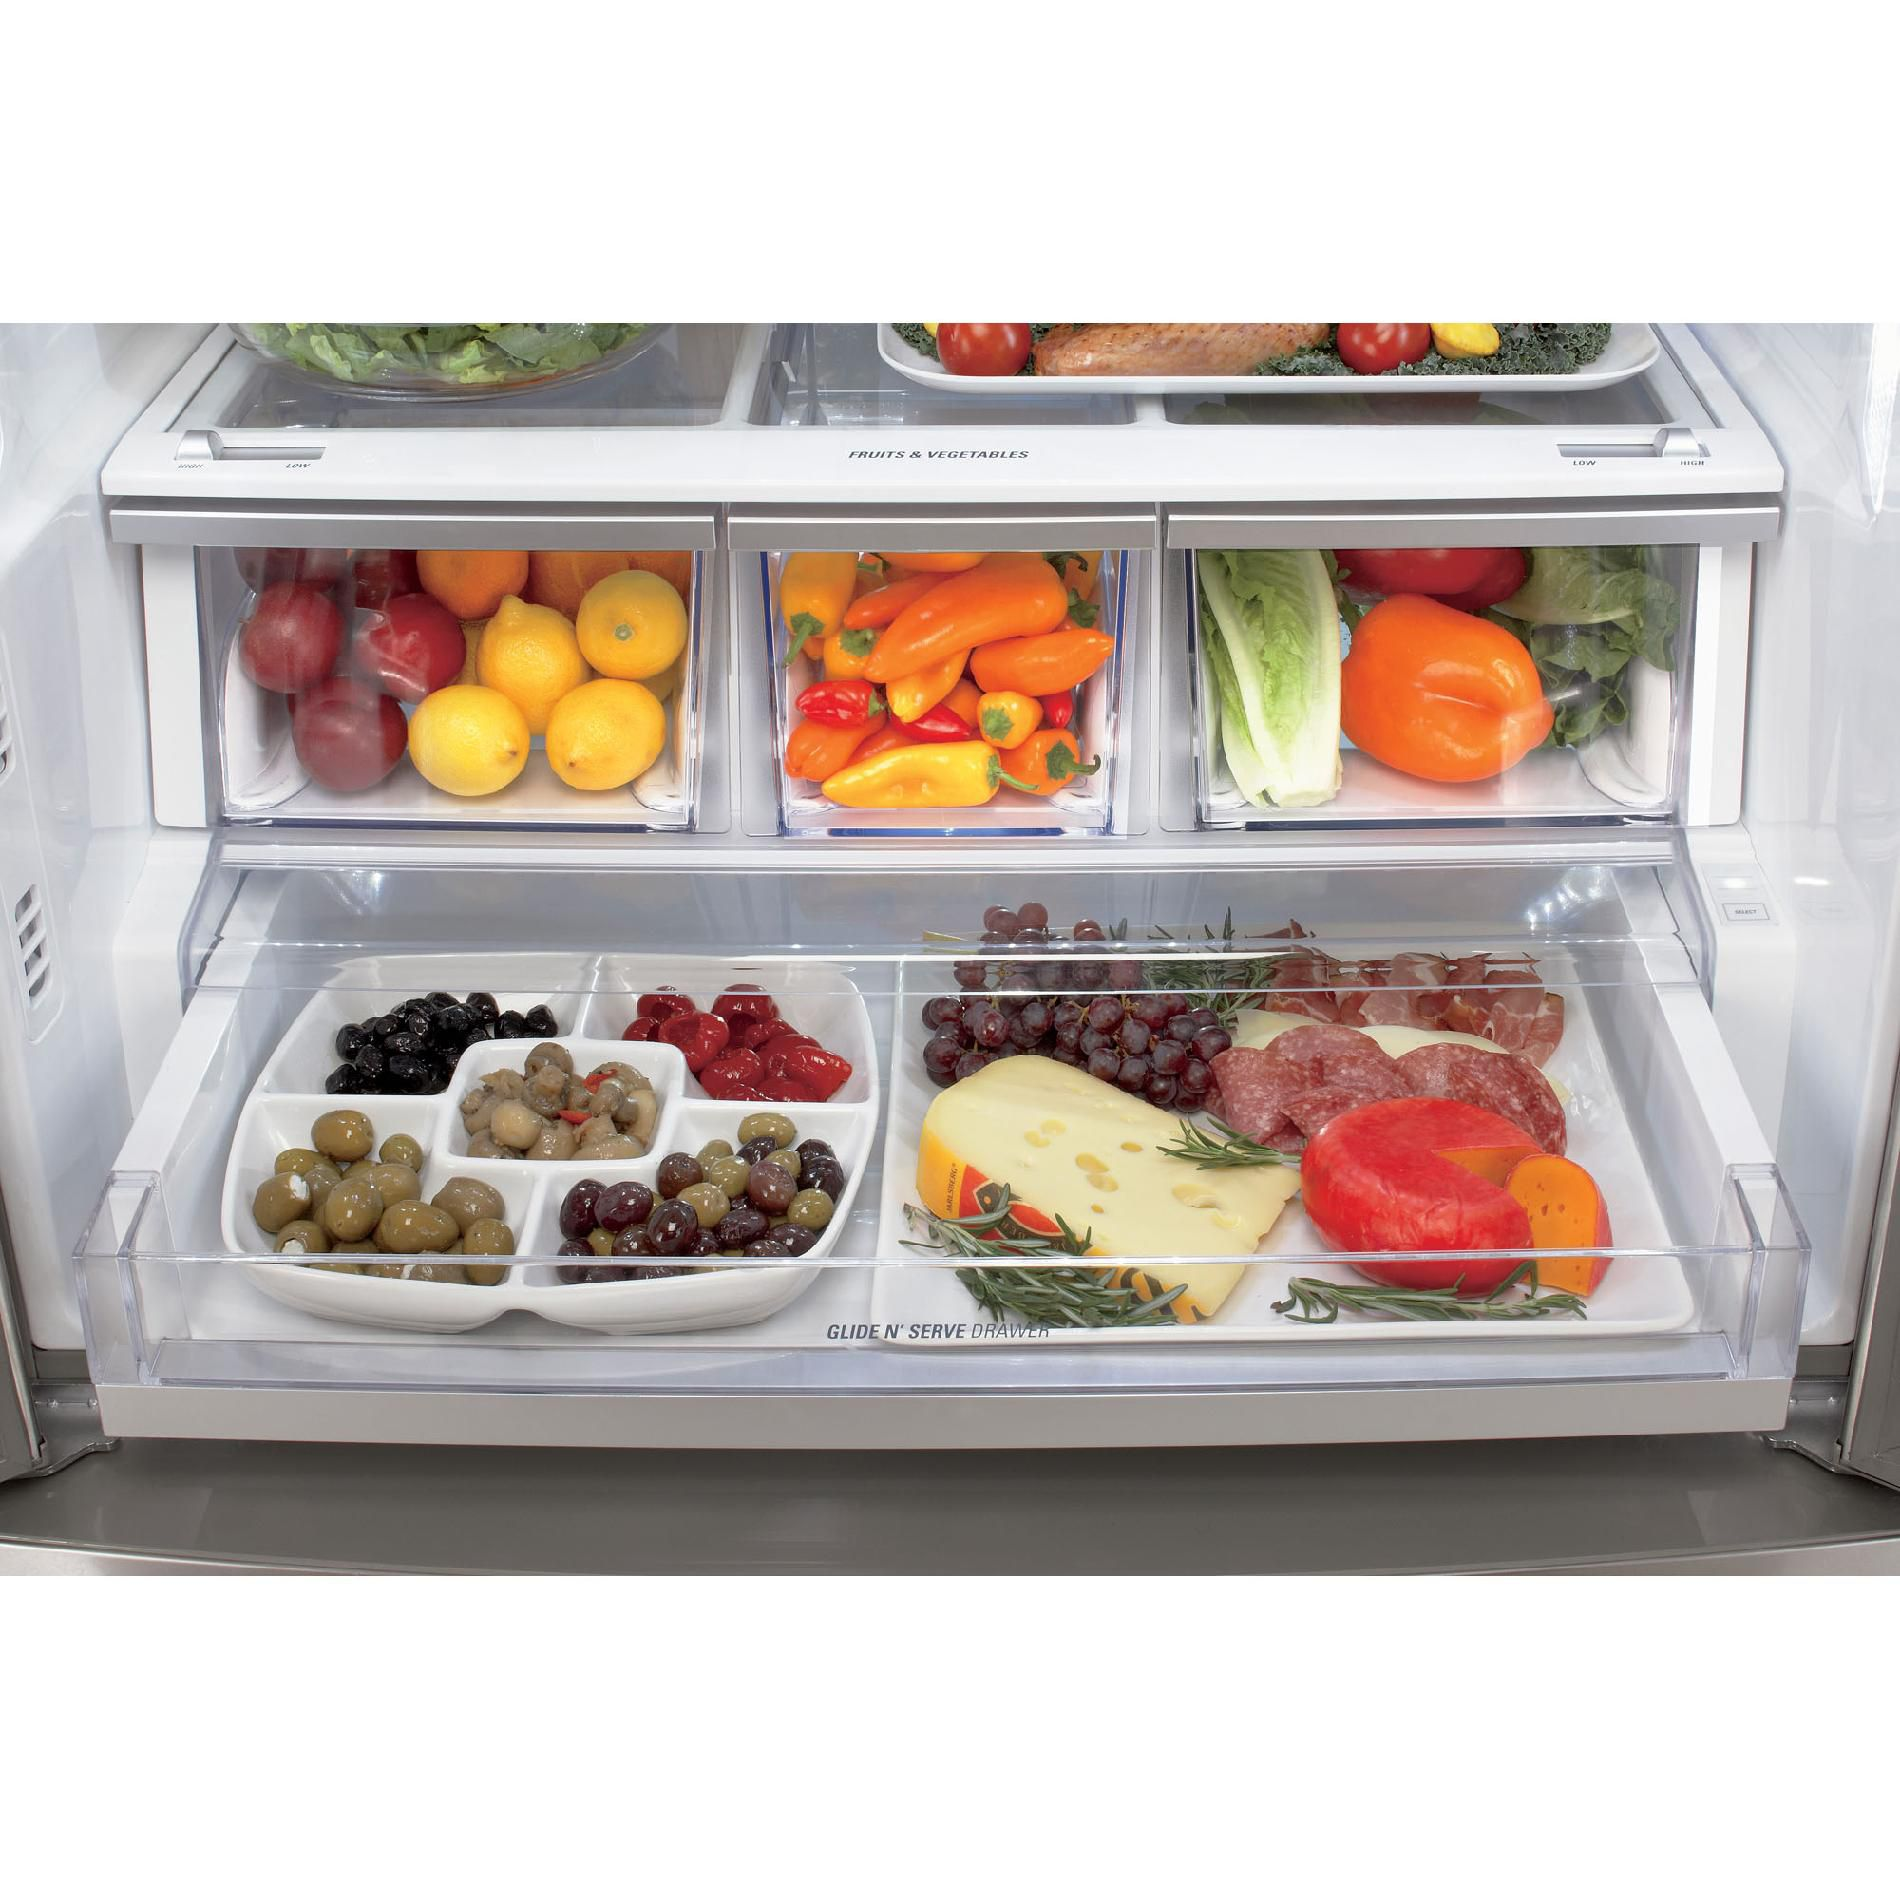 LG 24 6 cu. ft.  Counter-Depth French Door Bottom-Freezer Refrigerator - Stainless Steel